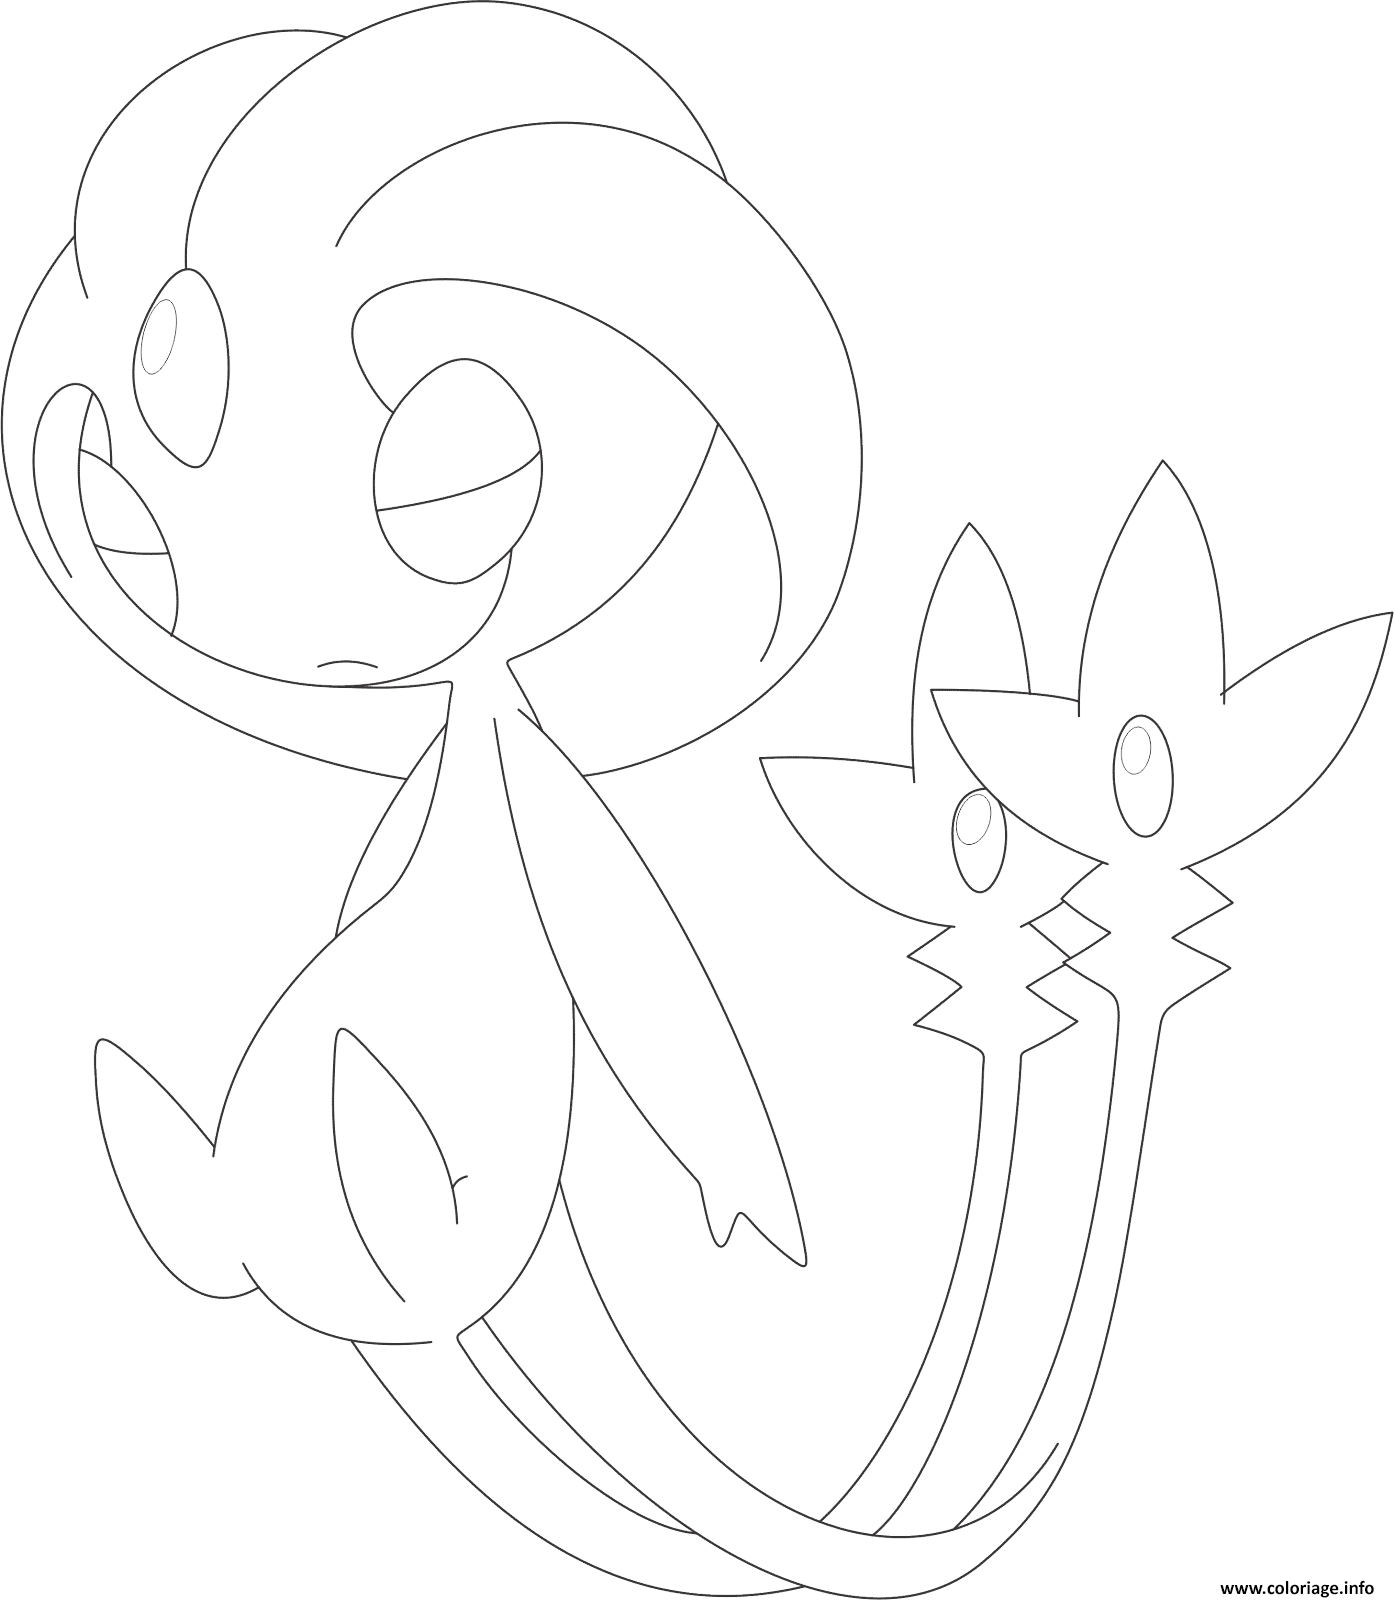 Coloriage Uxie Pokemon Legendaire Dessin